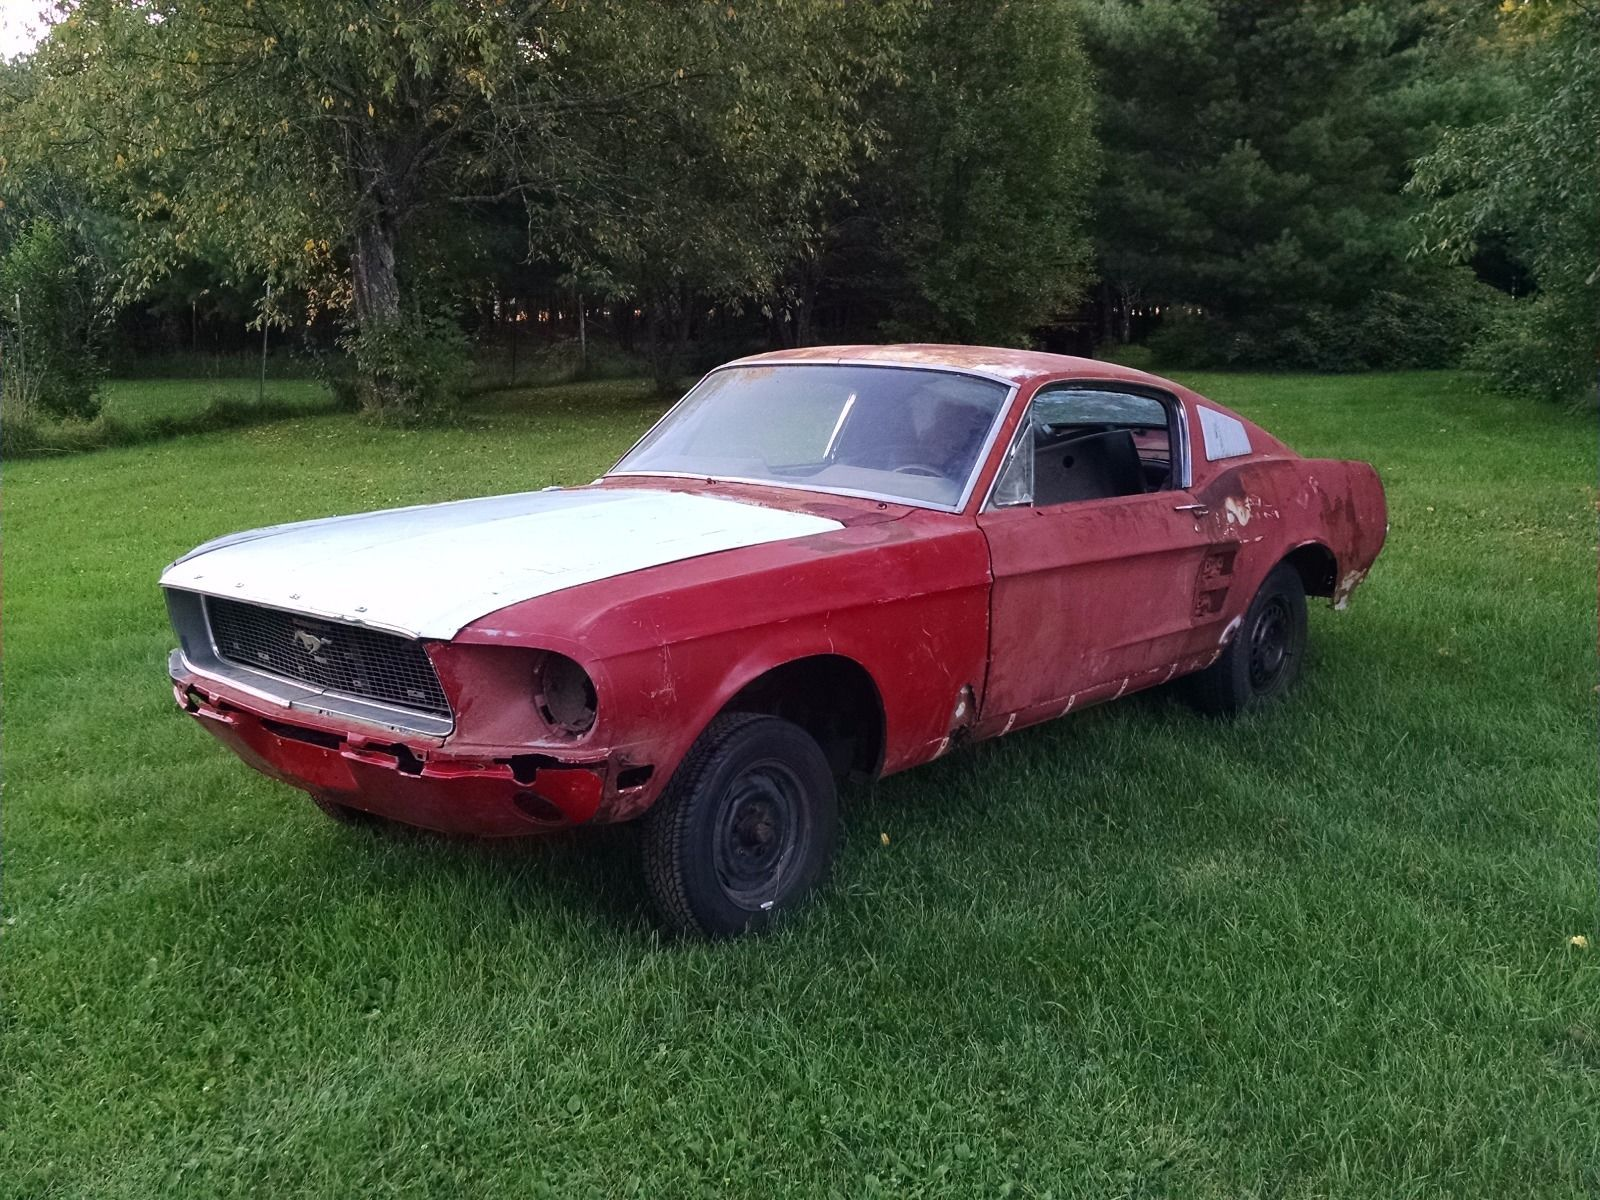 1967 ford mustang fastback project project cars for sale. Black Bedroom Furniture Sets. Home Design Ideas